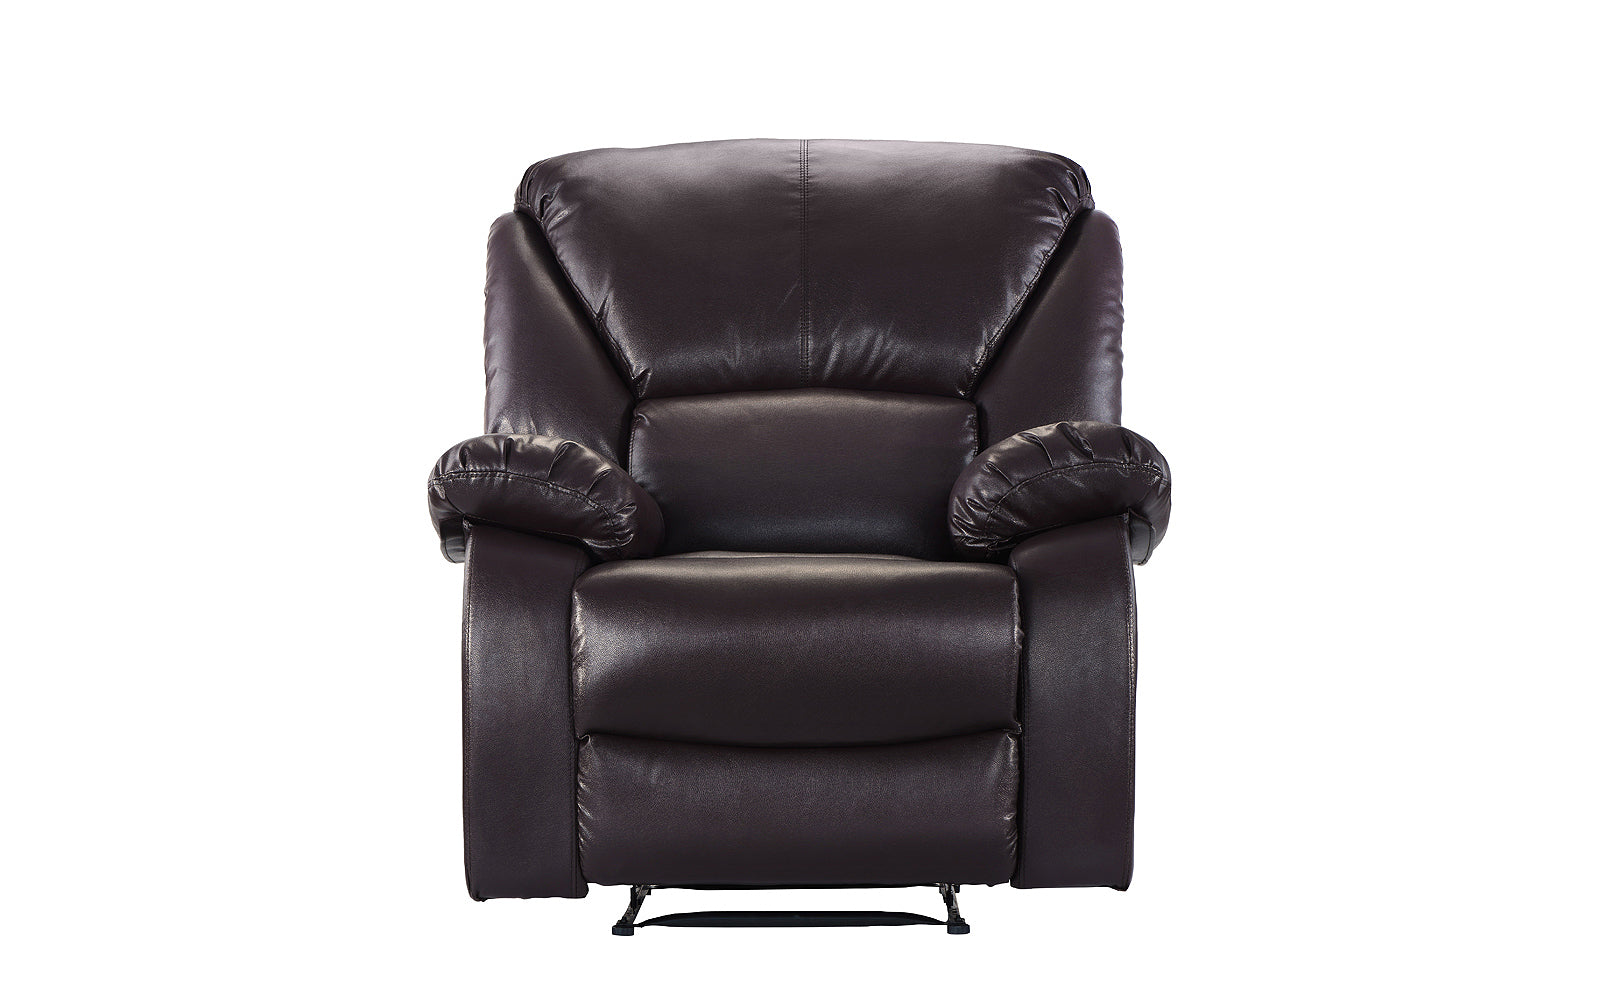 Charmant ... Bach Full Body Massage Recliner Chair Brown ...